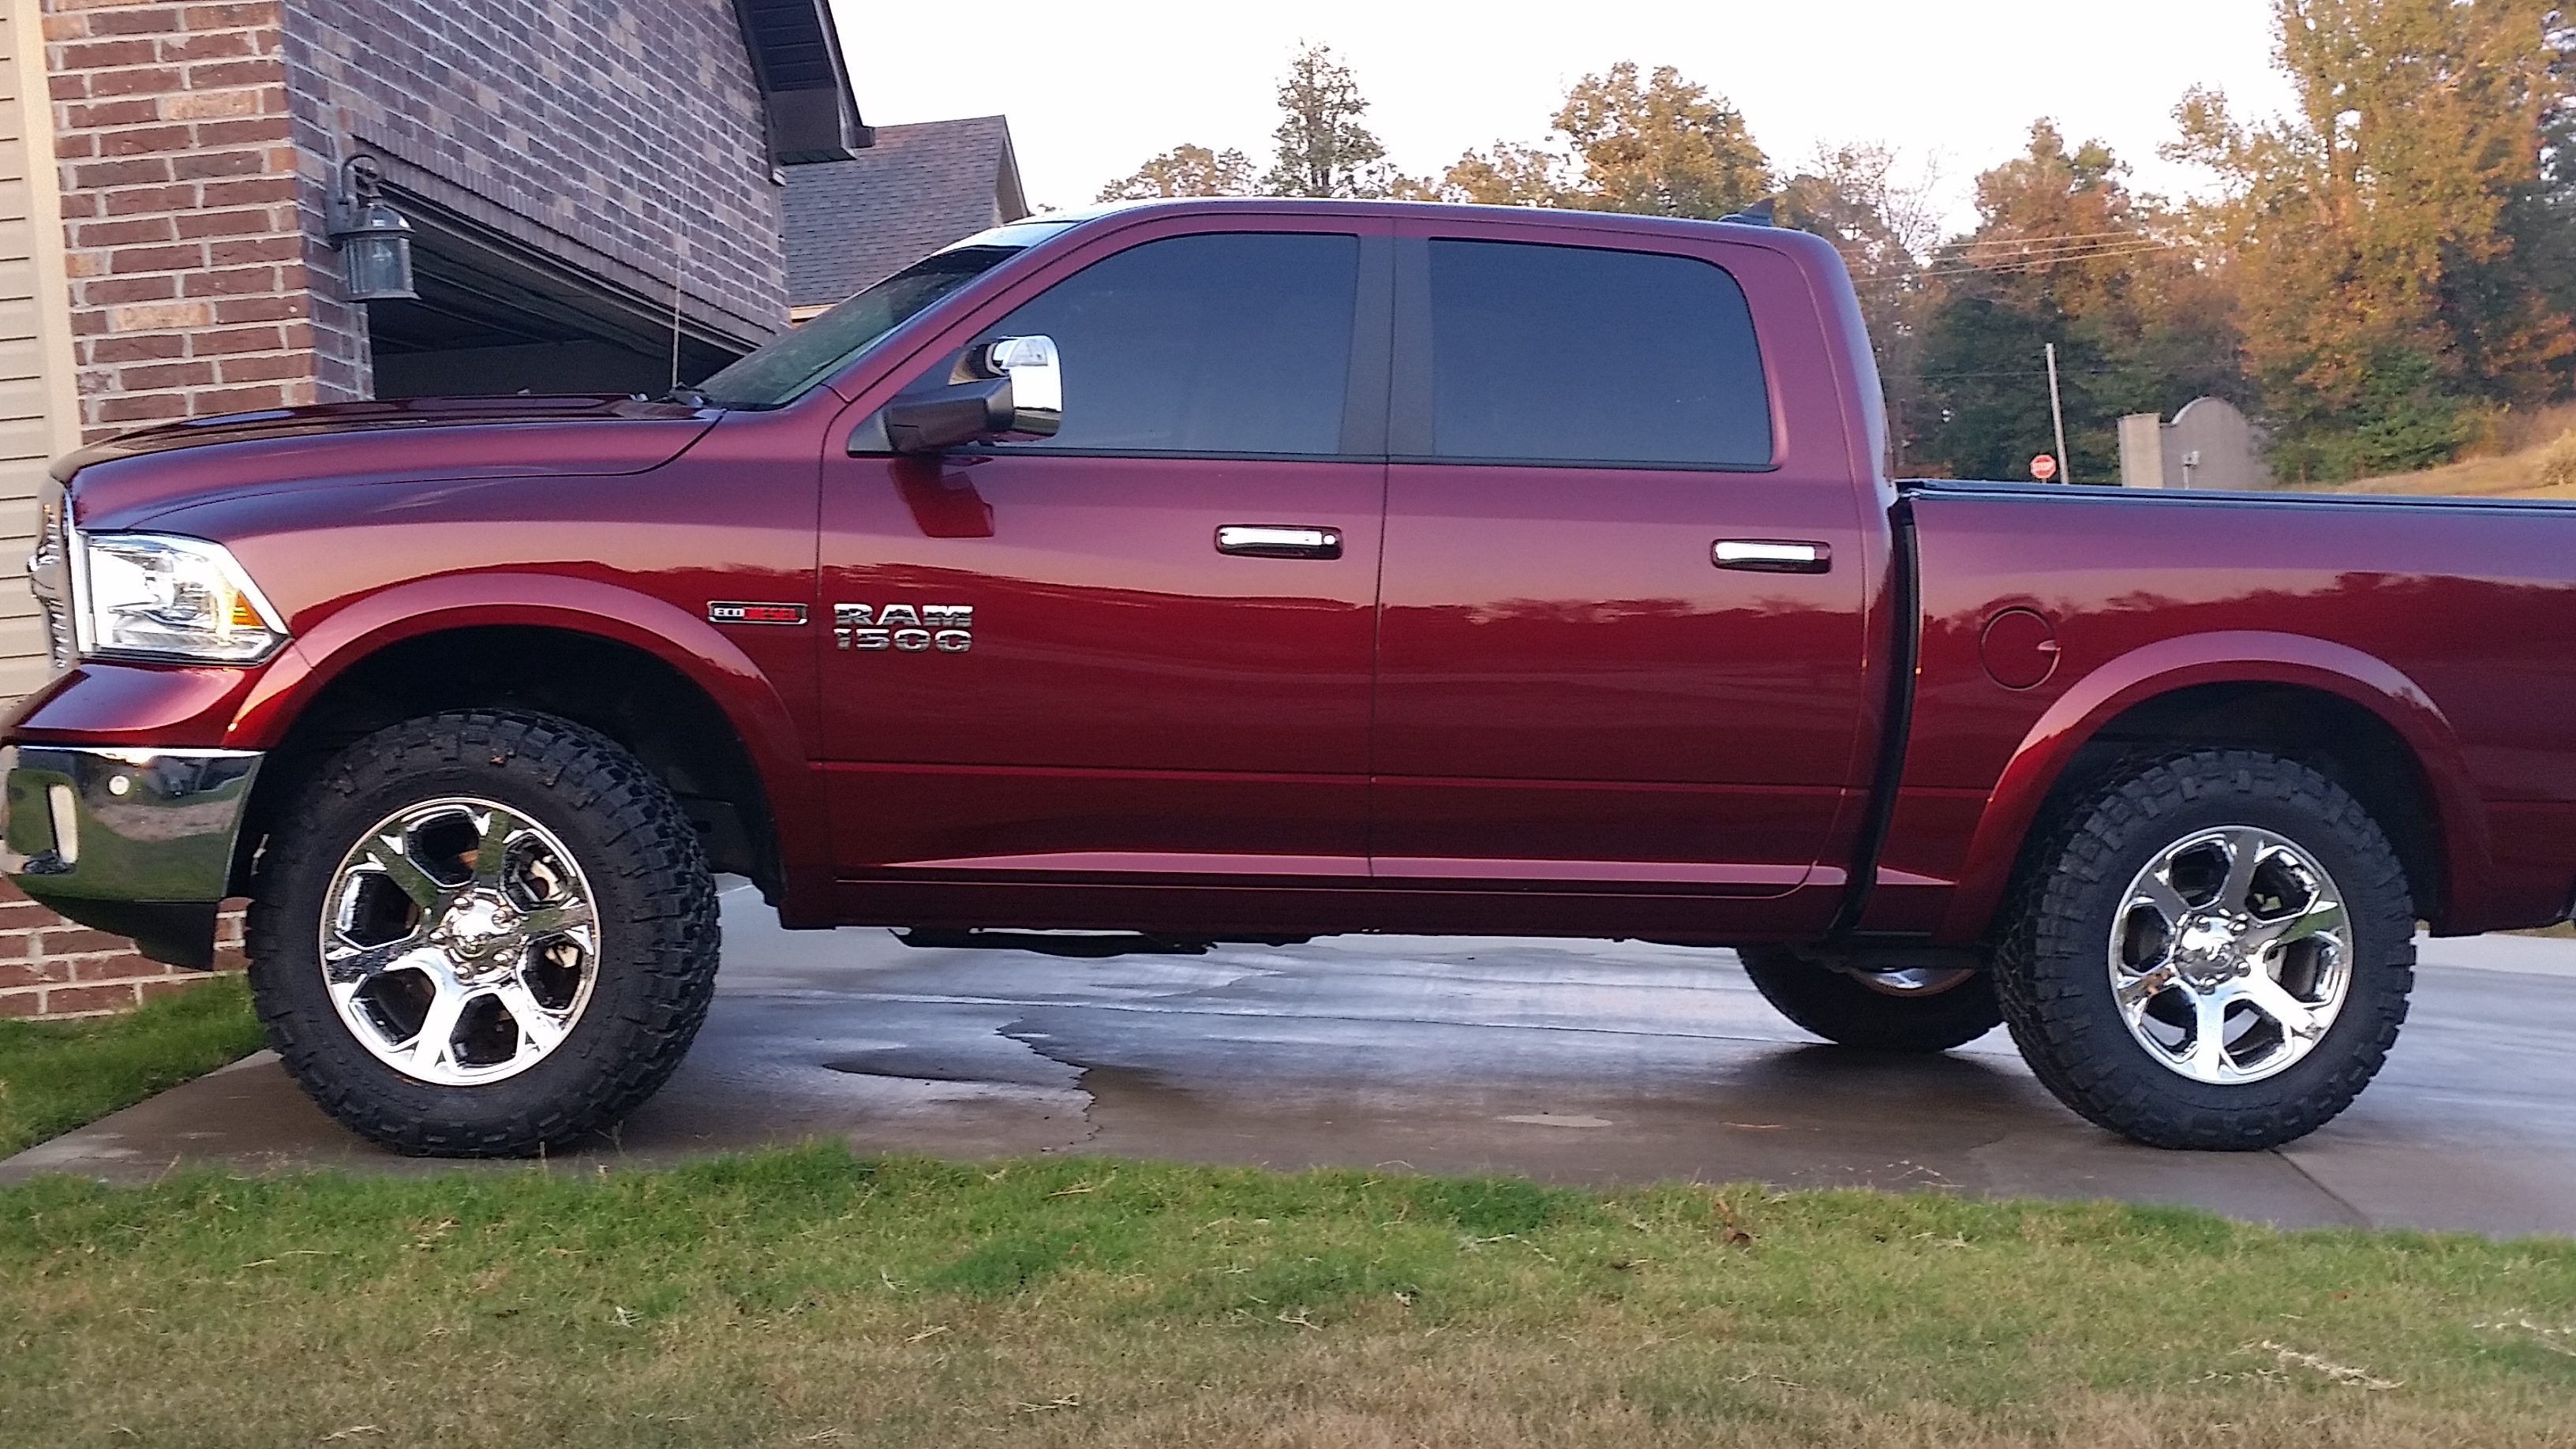 "Lifted Ram Ecodiesel >> 35 inch tires on Stock 20"" wheels-Lift Kit required, or is level kit ok? - Page 4"